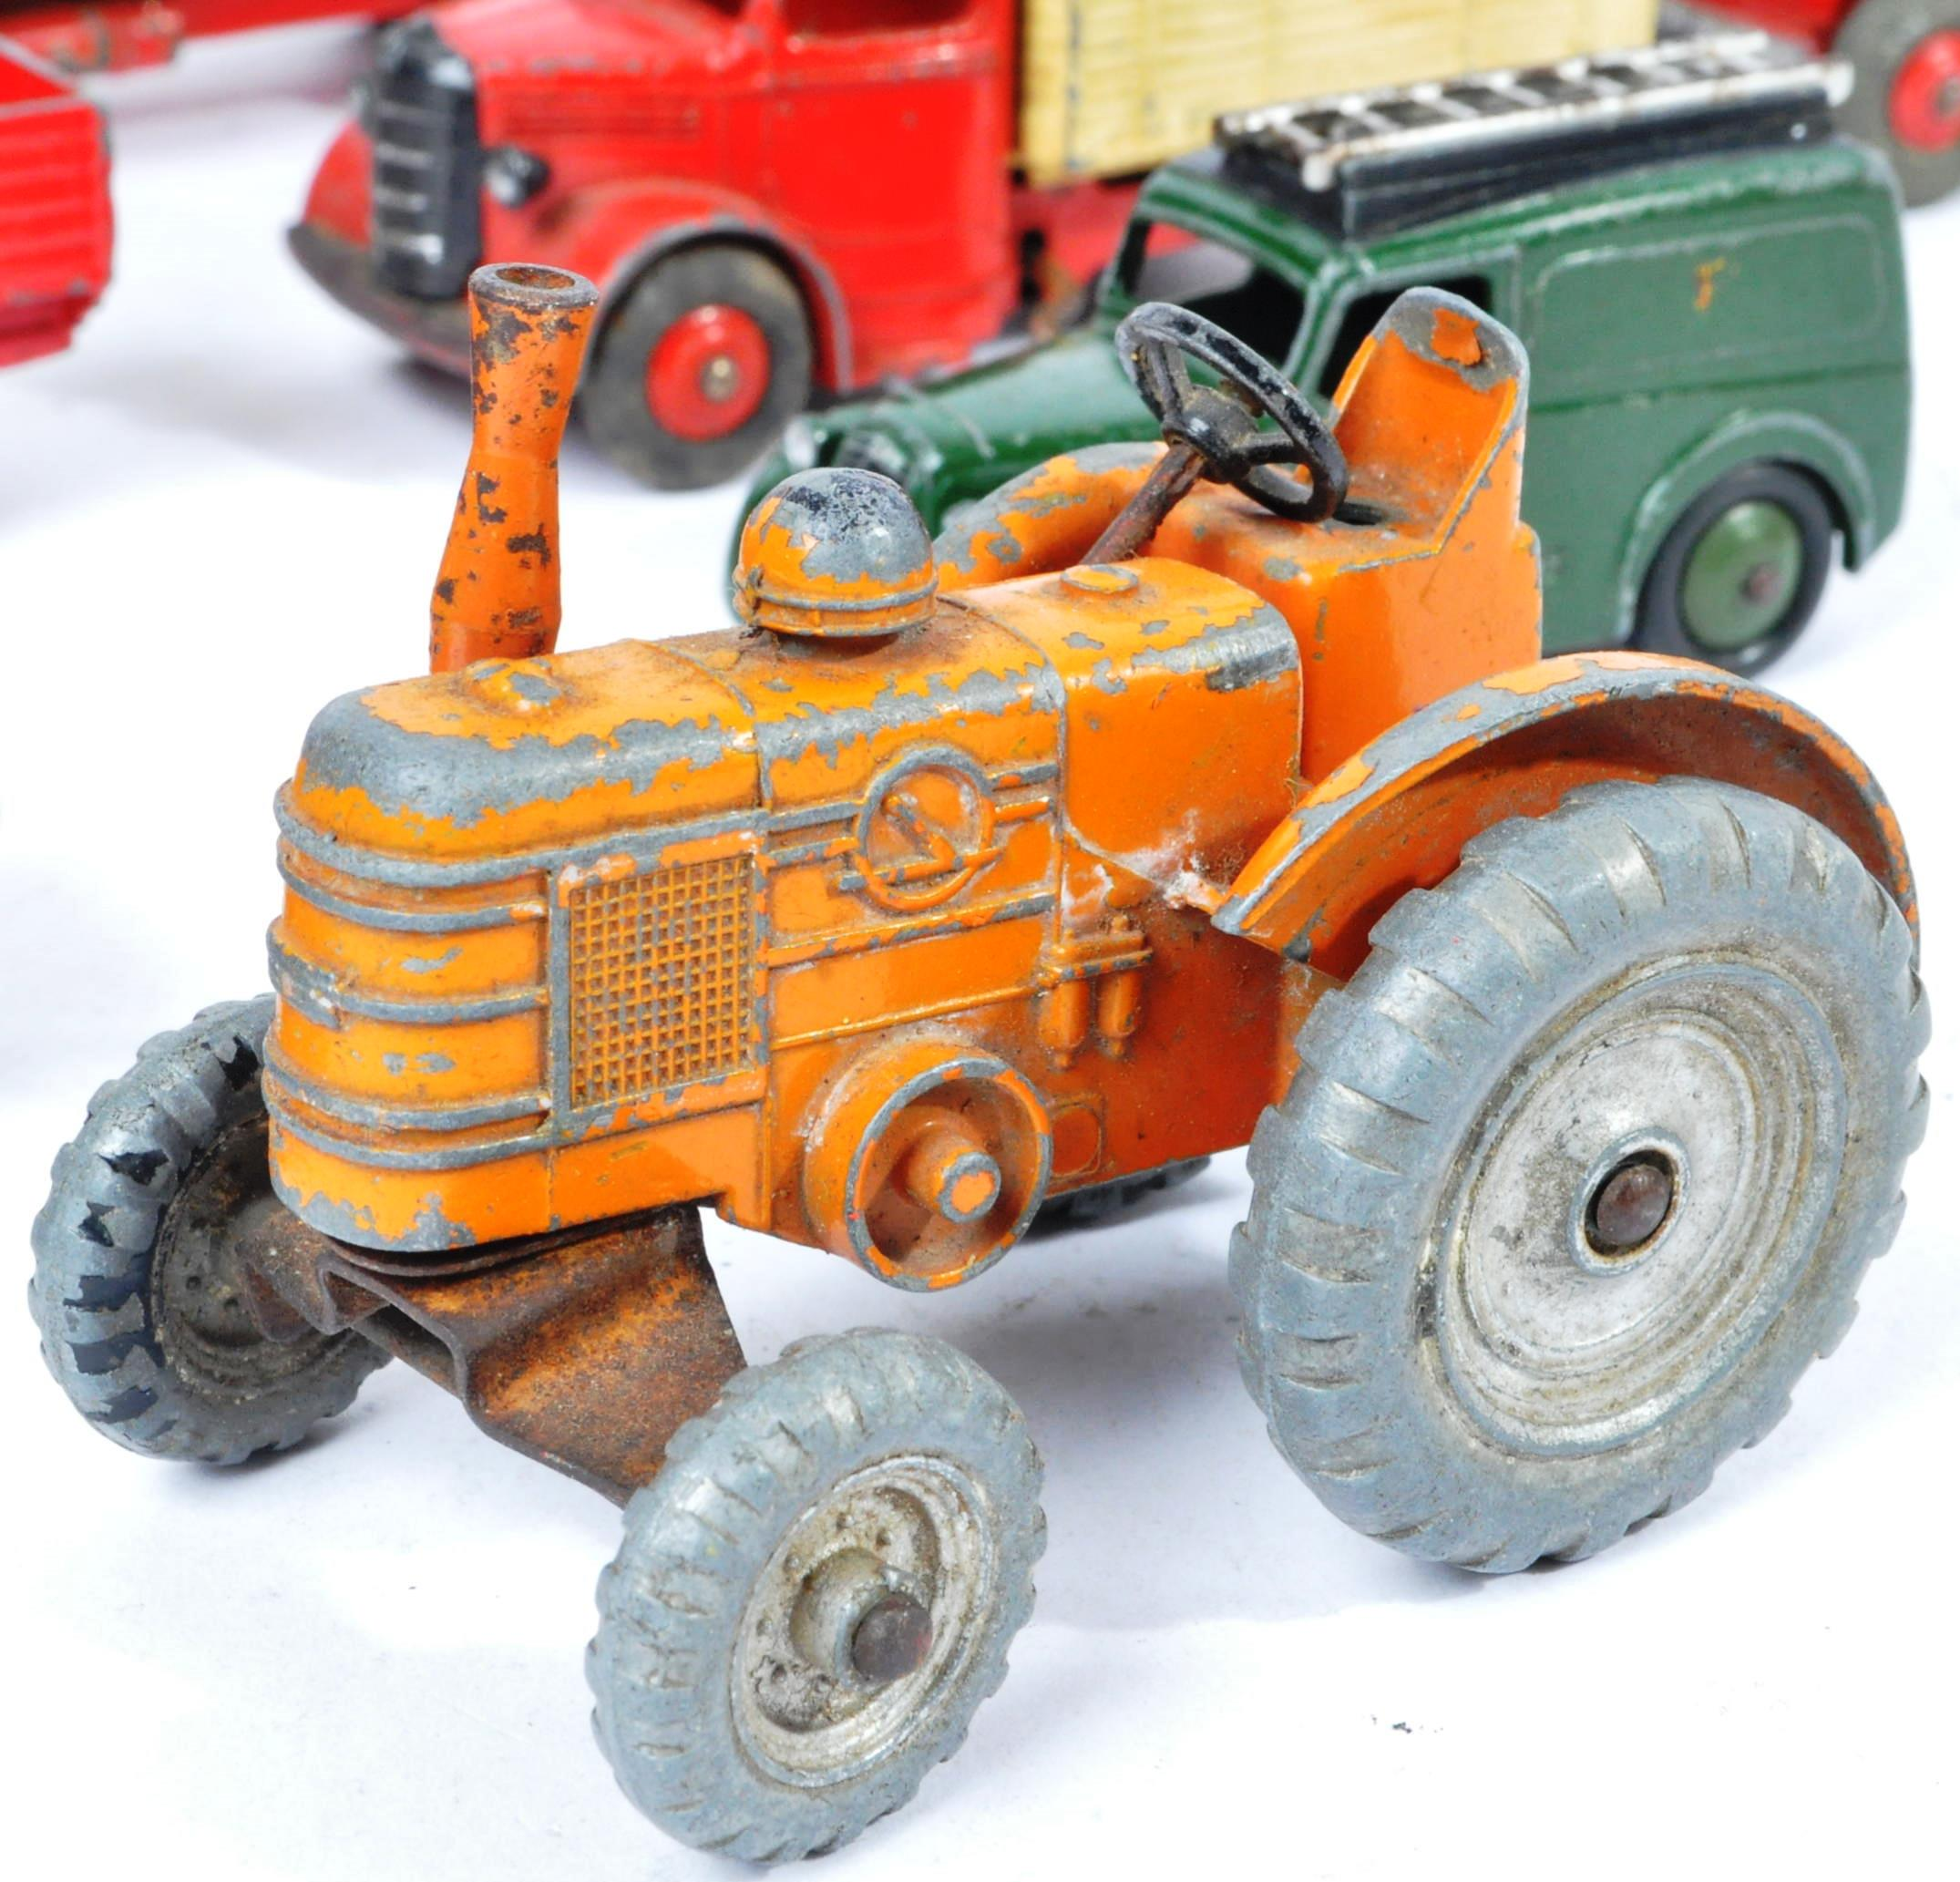 COLLECTION OF X10 VINTAGE DINKY TOYS DIECAST MODEL TRUCKS - Image 9 of 14